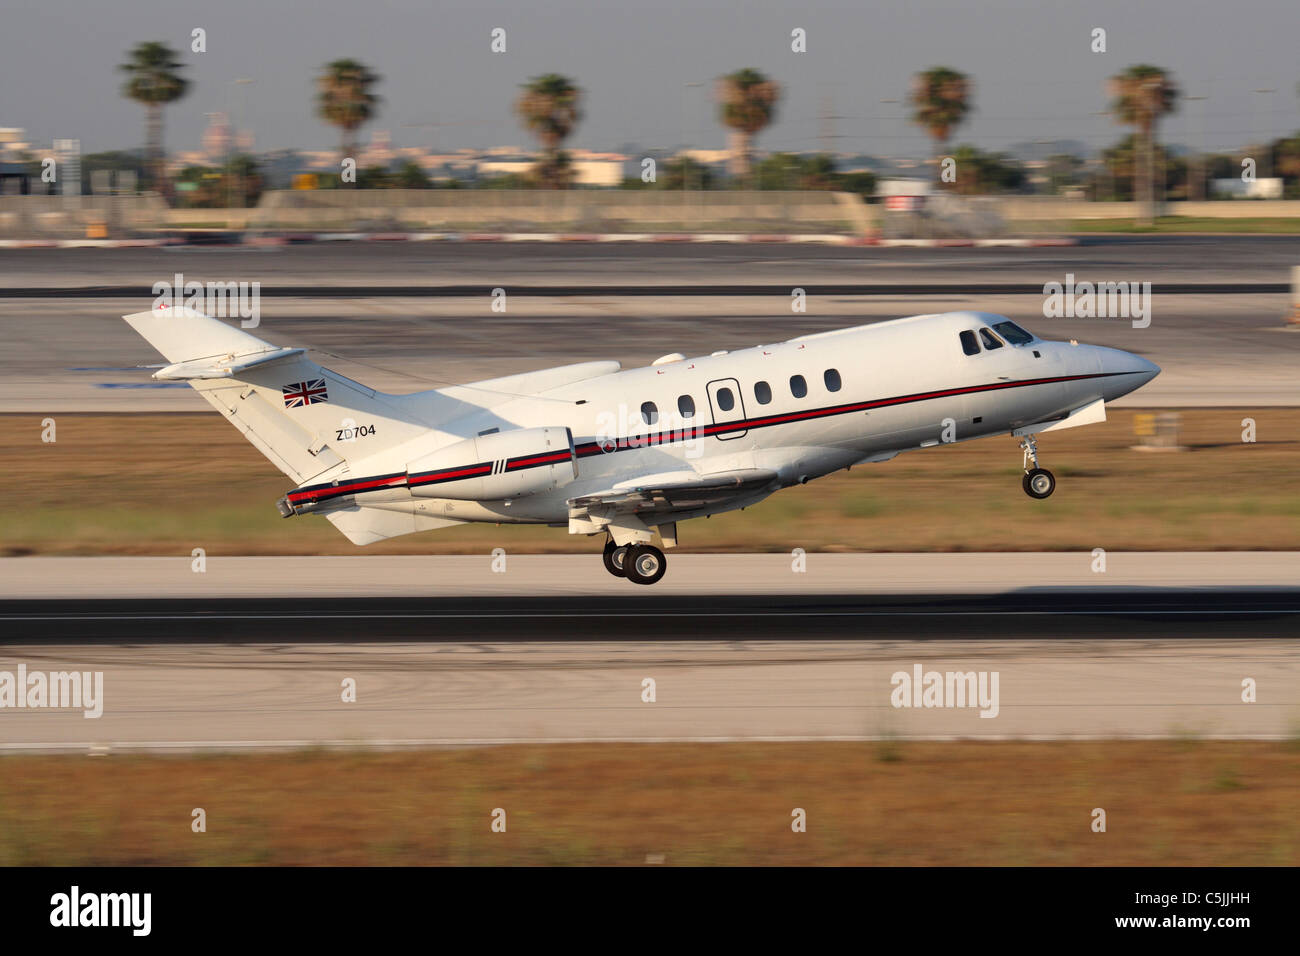 British Aerospace 125 corporate jet and VIP transport of the Royal Air Force taking off from Malta. Side view with - Stock Image